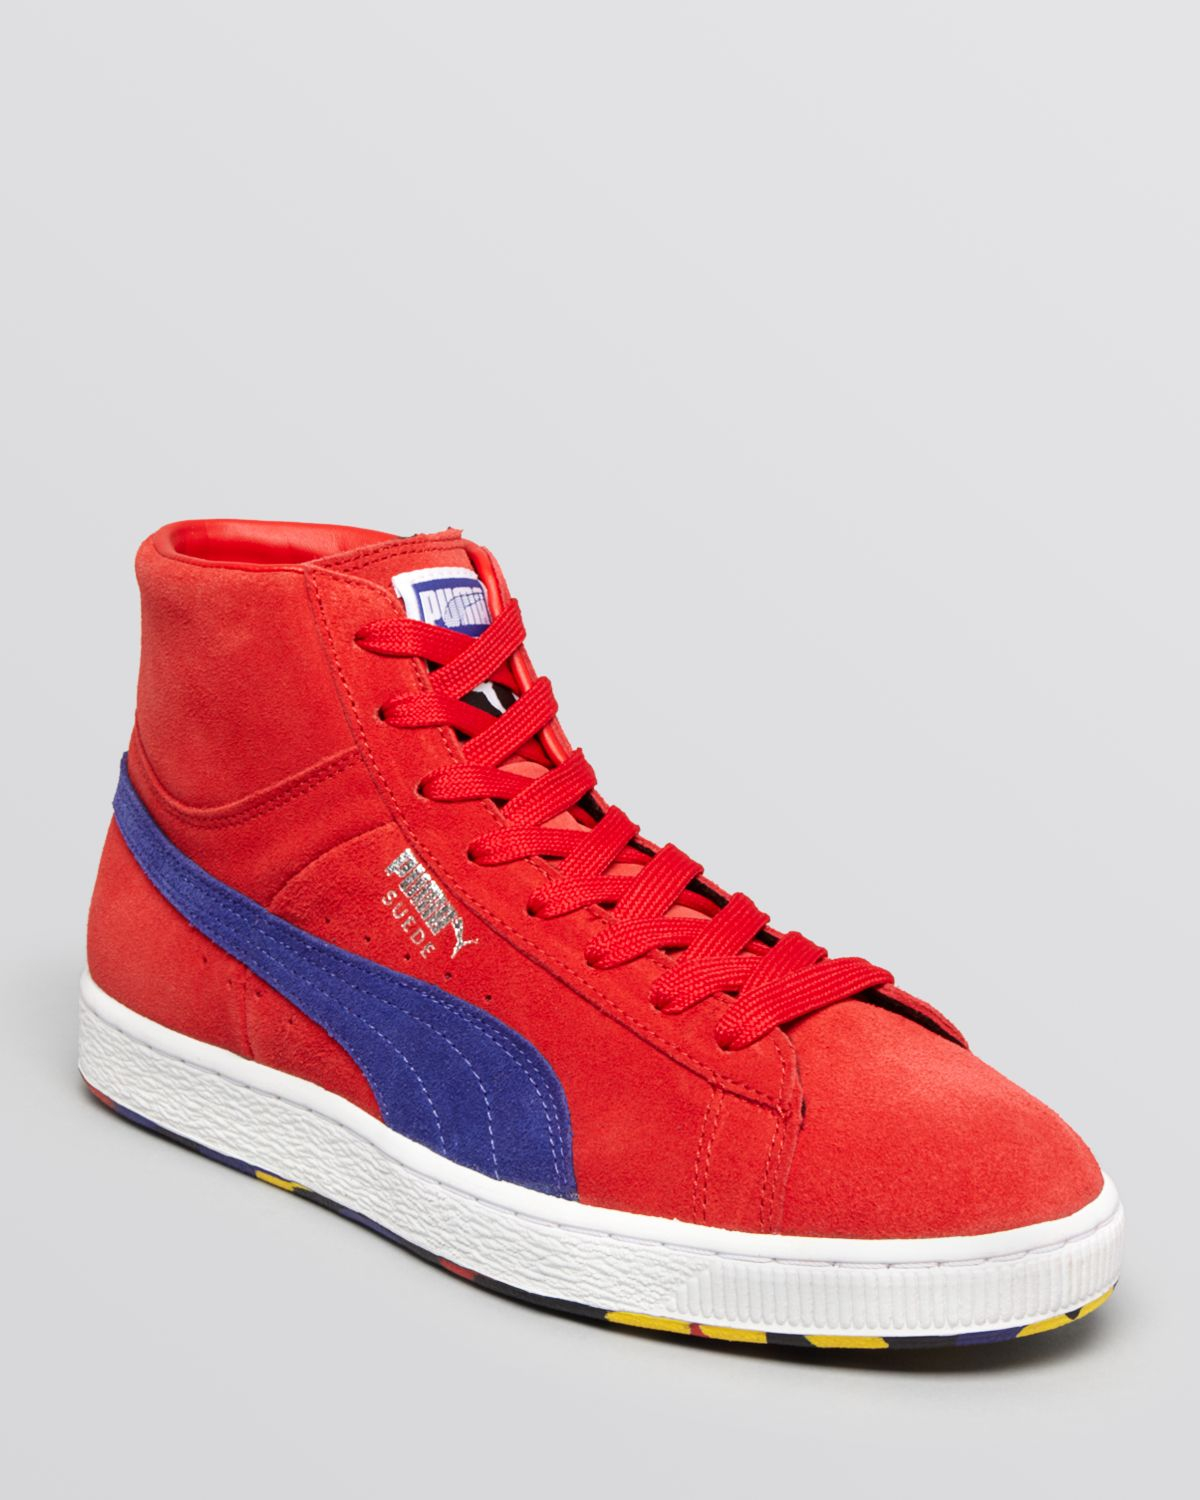 b4311cd5a9f5 Lyst - PUMA Suede Classic Rubber Mix Mid Sneakers in Red for Men